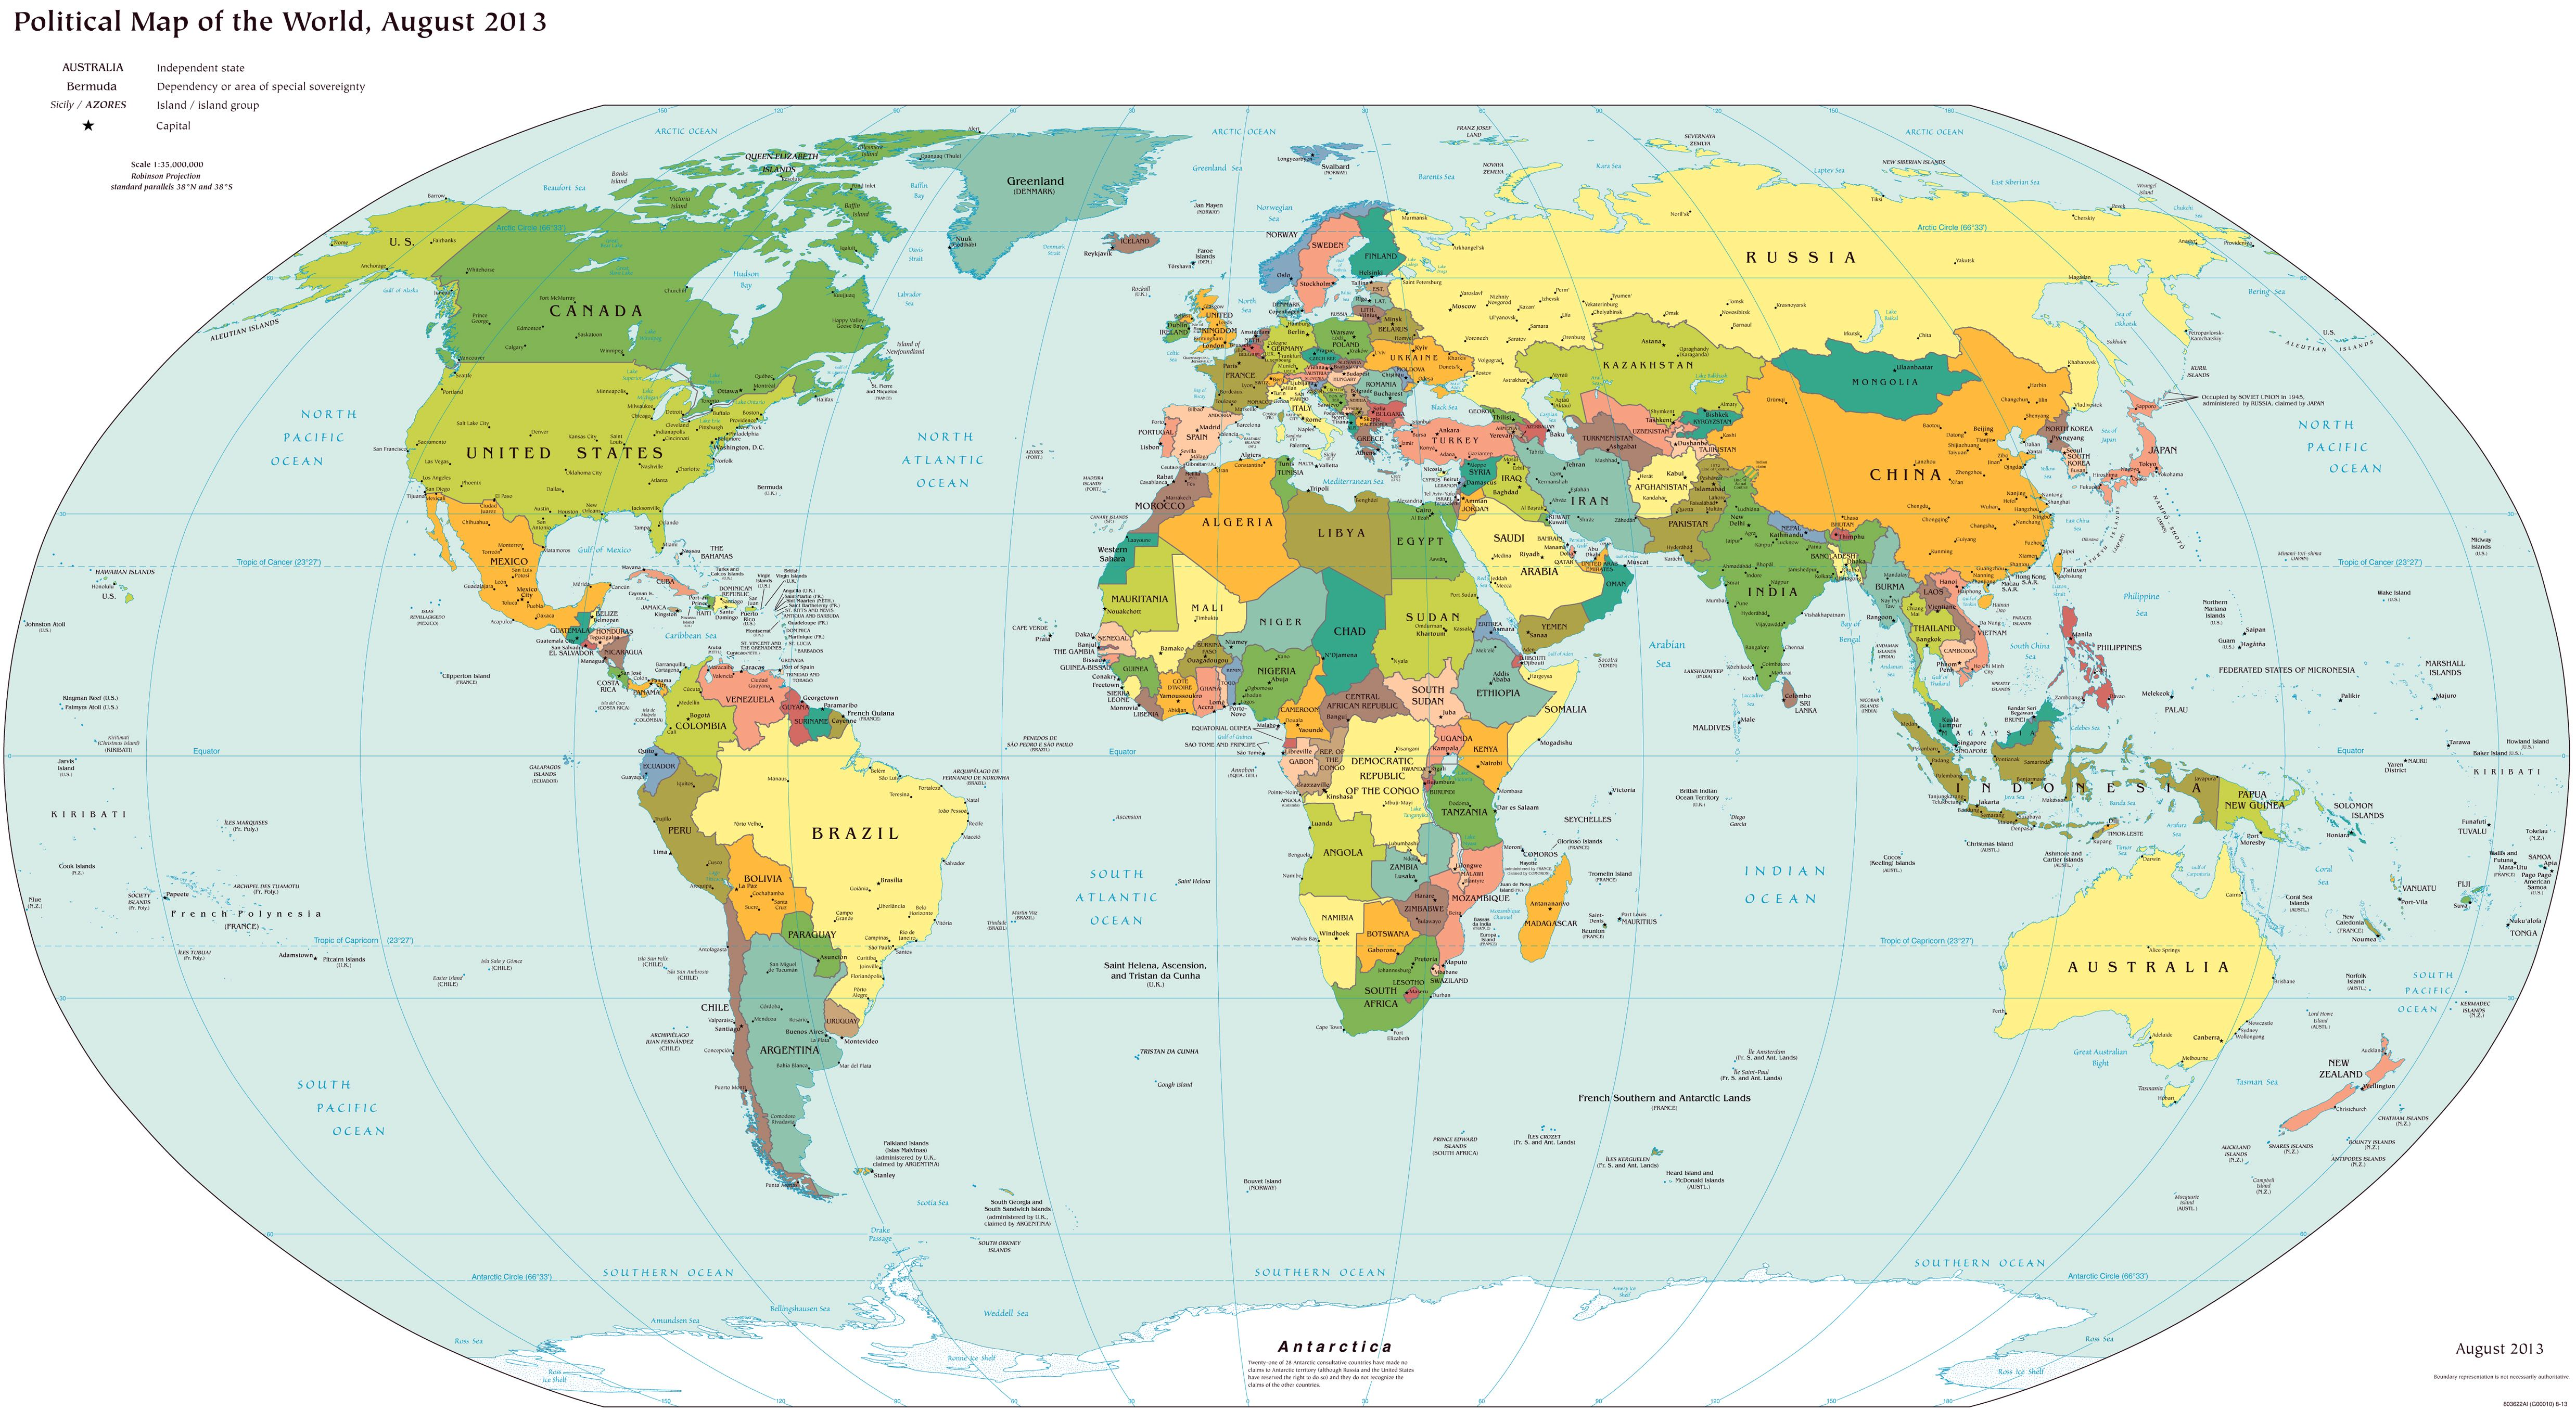 Large scale detailed political map of the world with major cities large scale detailed political map of the world with major cities 2013g 49502710 gumiabroncs Images